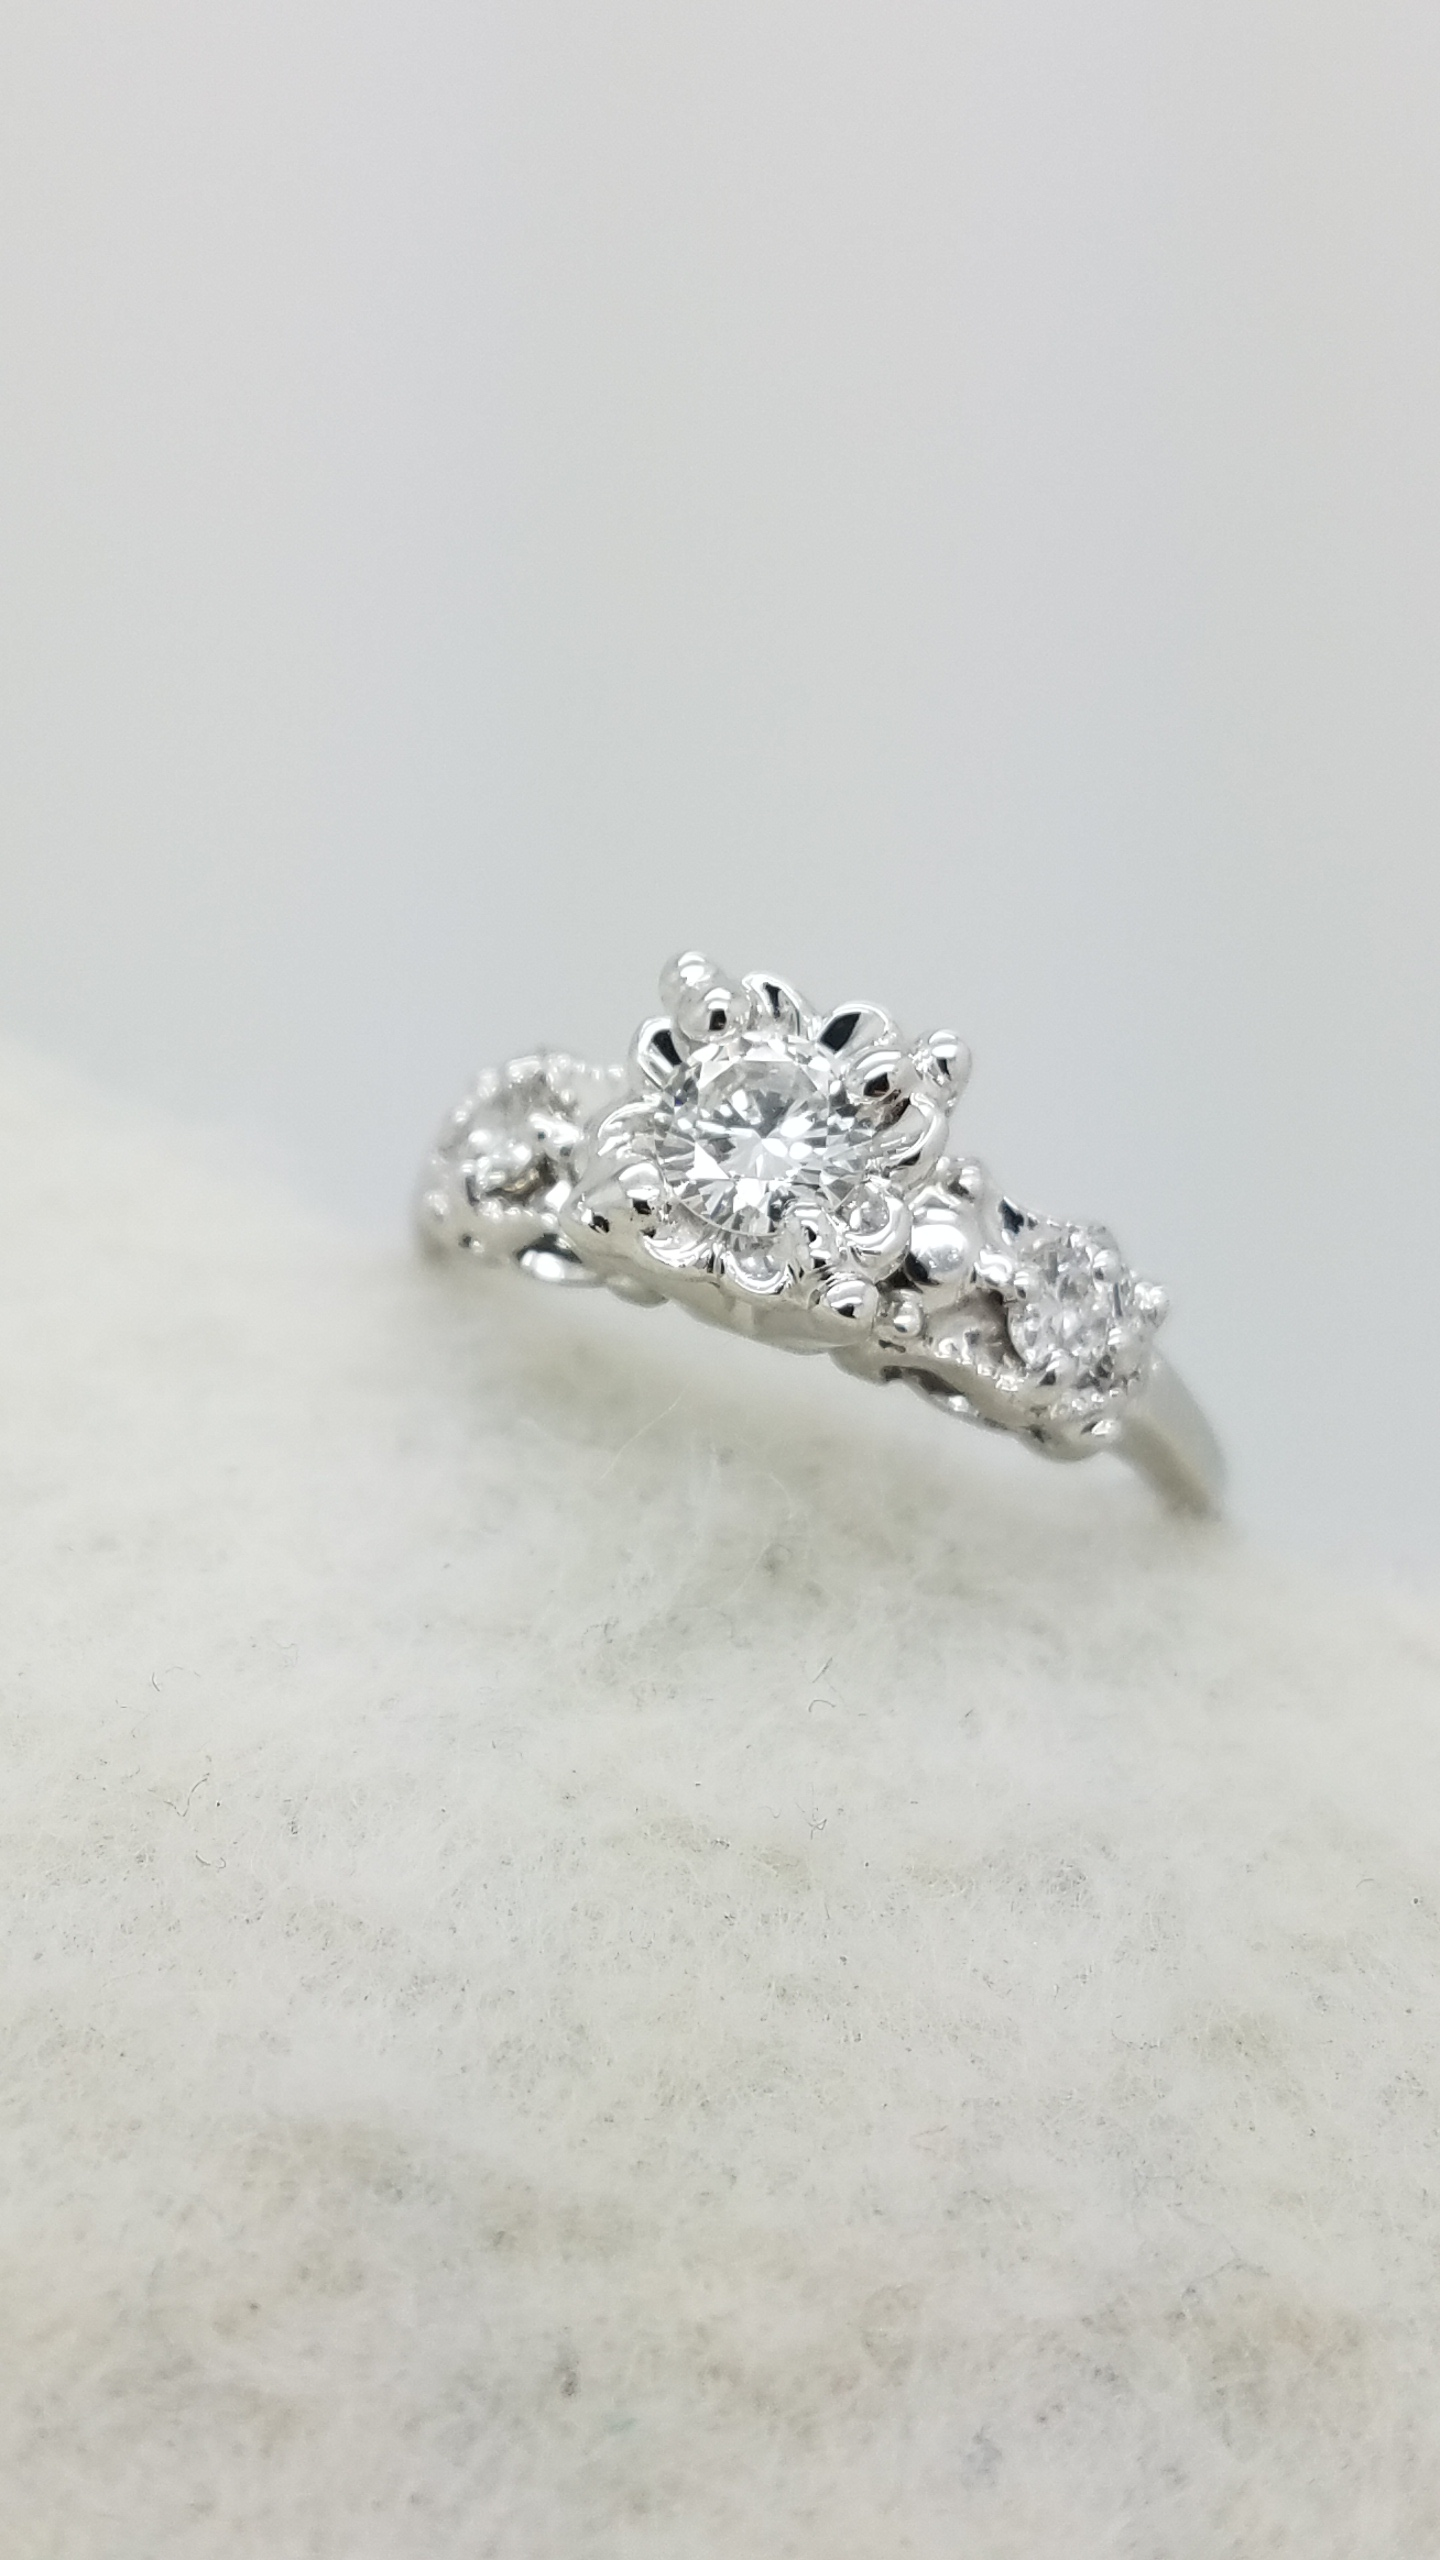 14K        White Gold        ENGAGEMENT        0.60        ct        Round        Cut                Diamond        4-prong        Anniversary Band        Ring